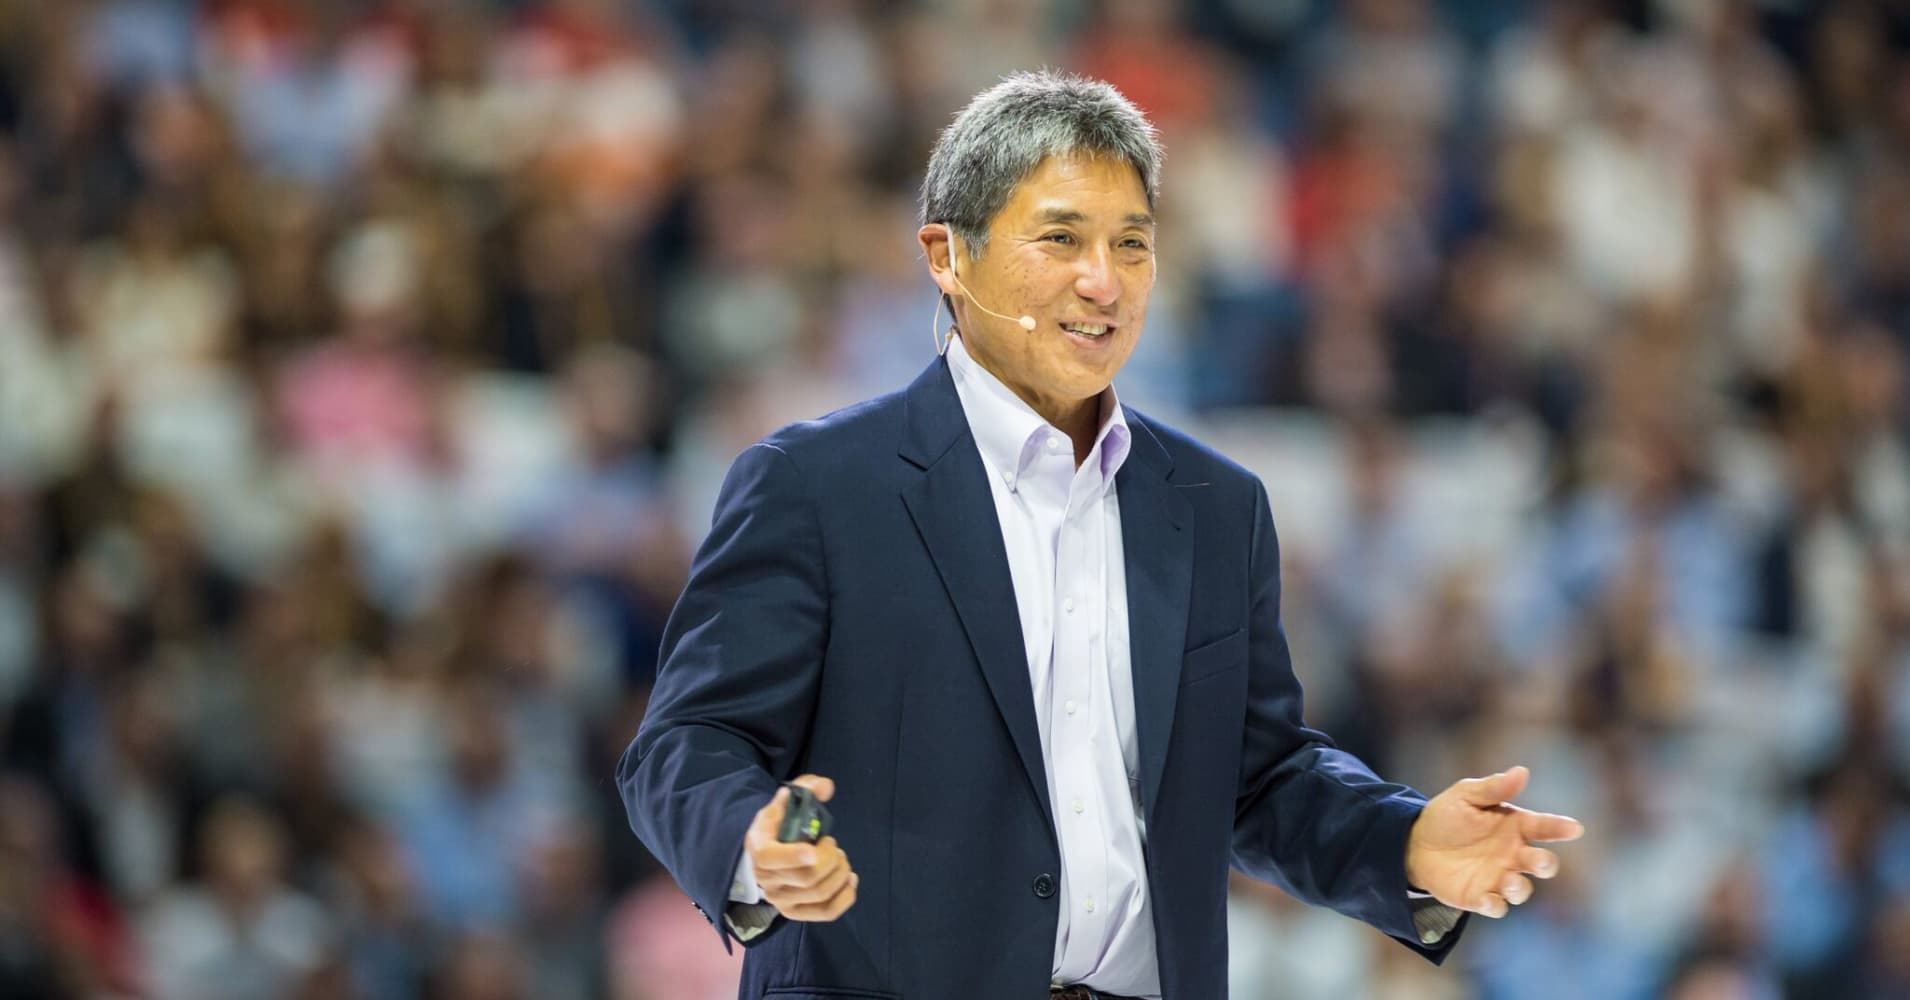 Guy Kawasaki on the state of innovation at Apple